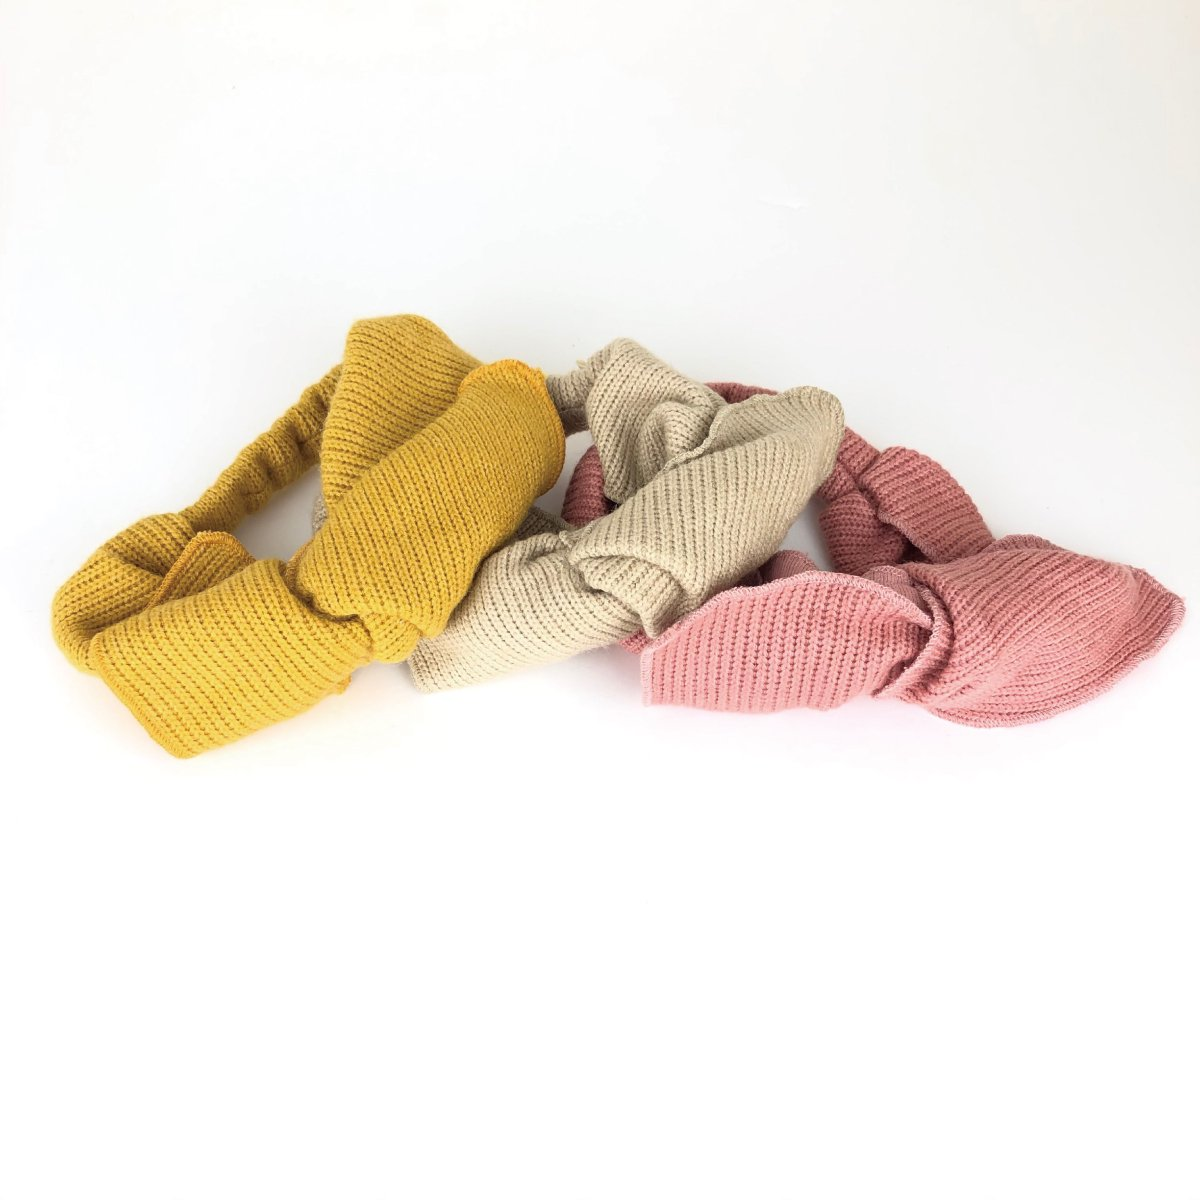 【BABY】Baby Knit